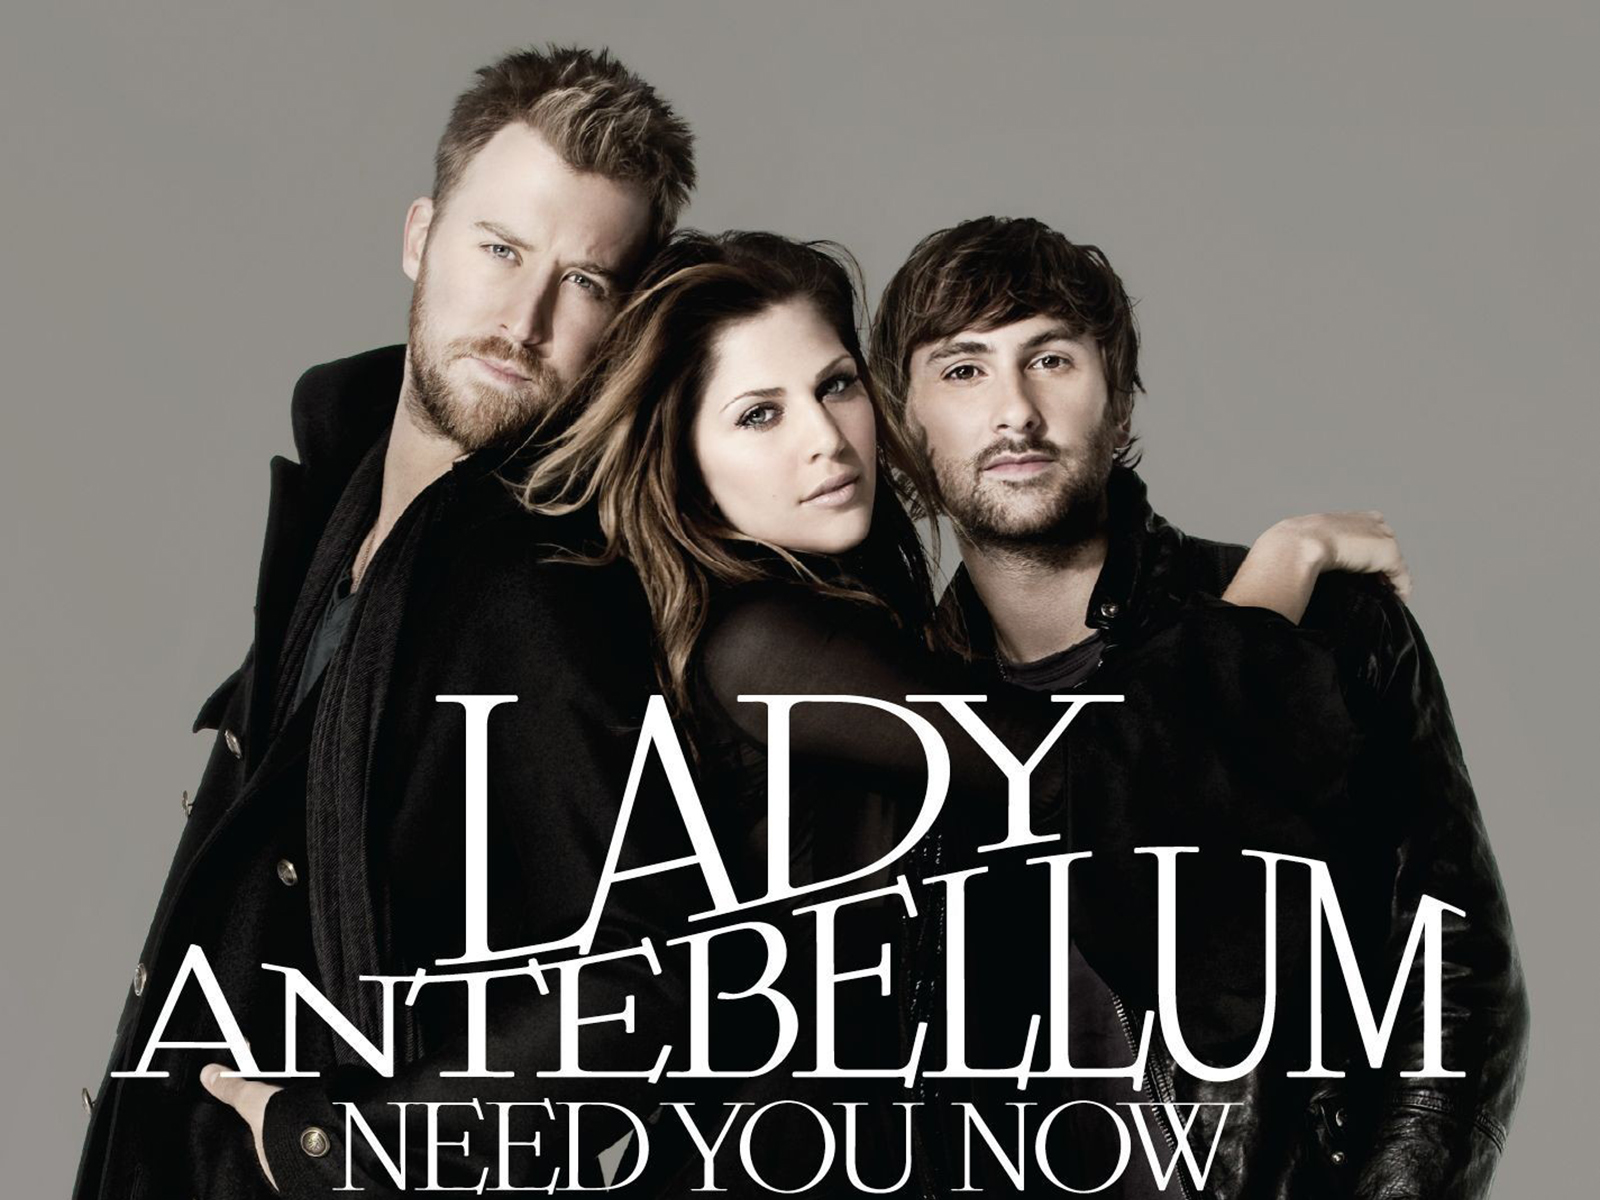 Should you have glanced over the latest UK singles chart and wondered why the h*ck Lady Antebellum's 'Need You Now' logs a 50th week, here's the answer.